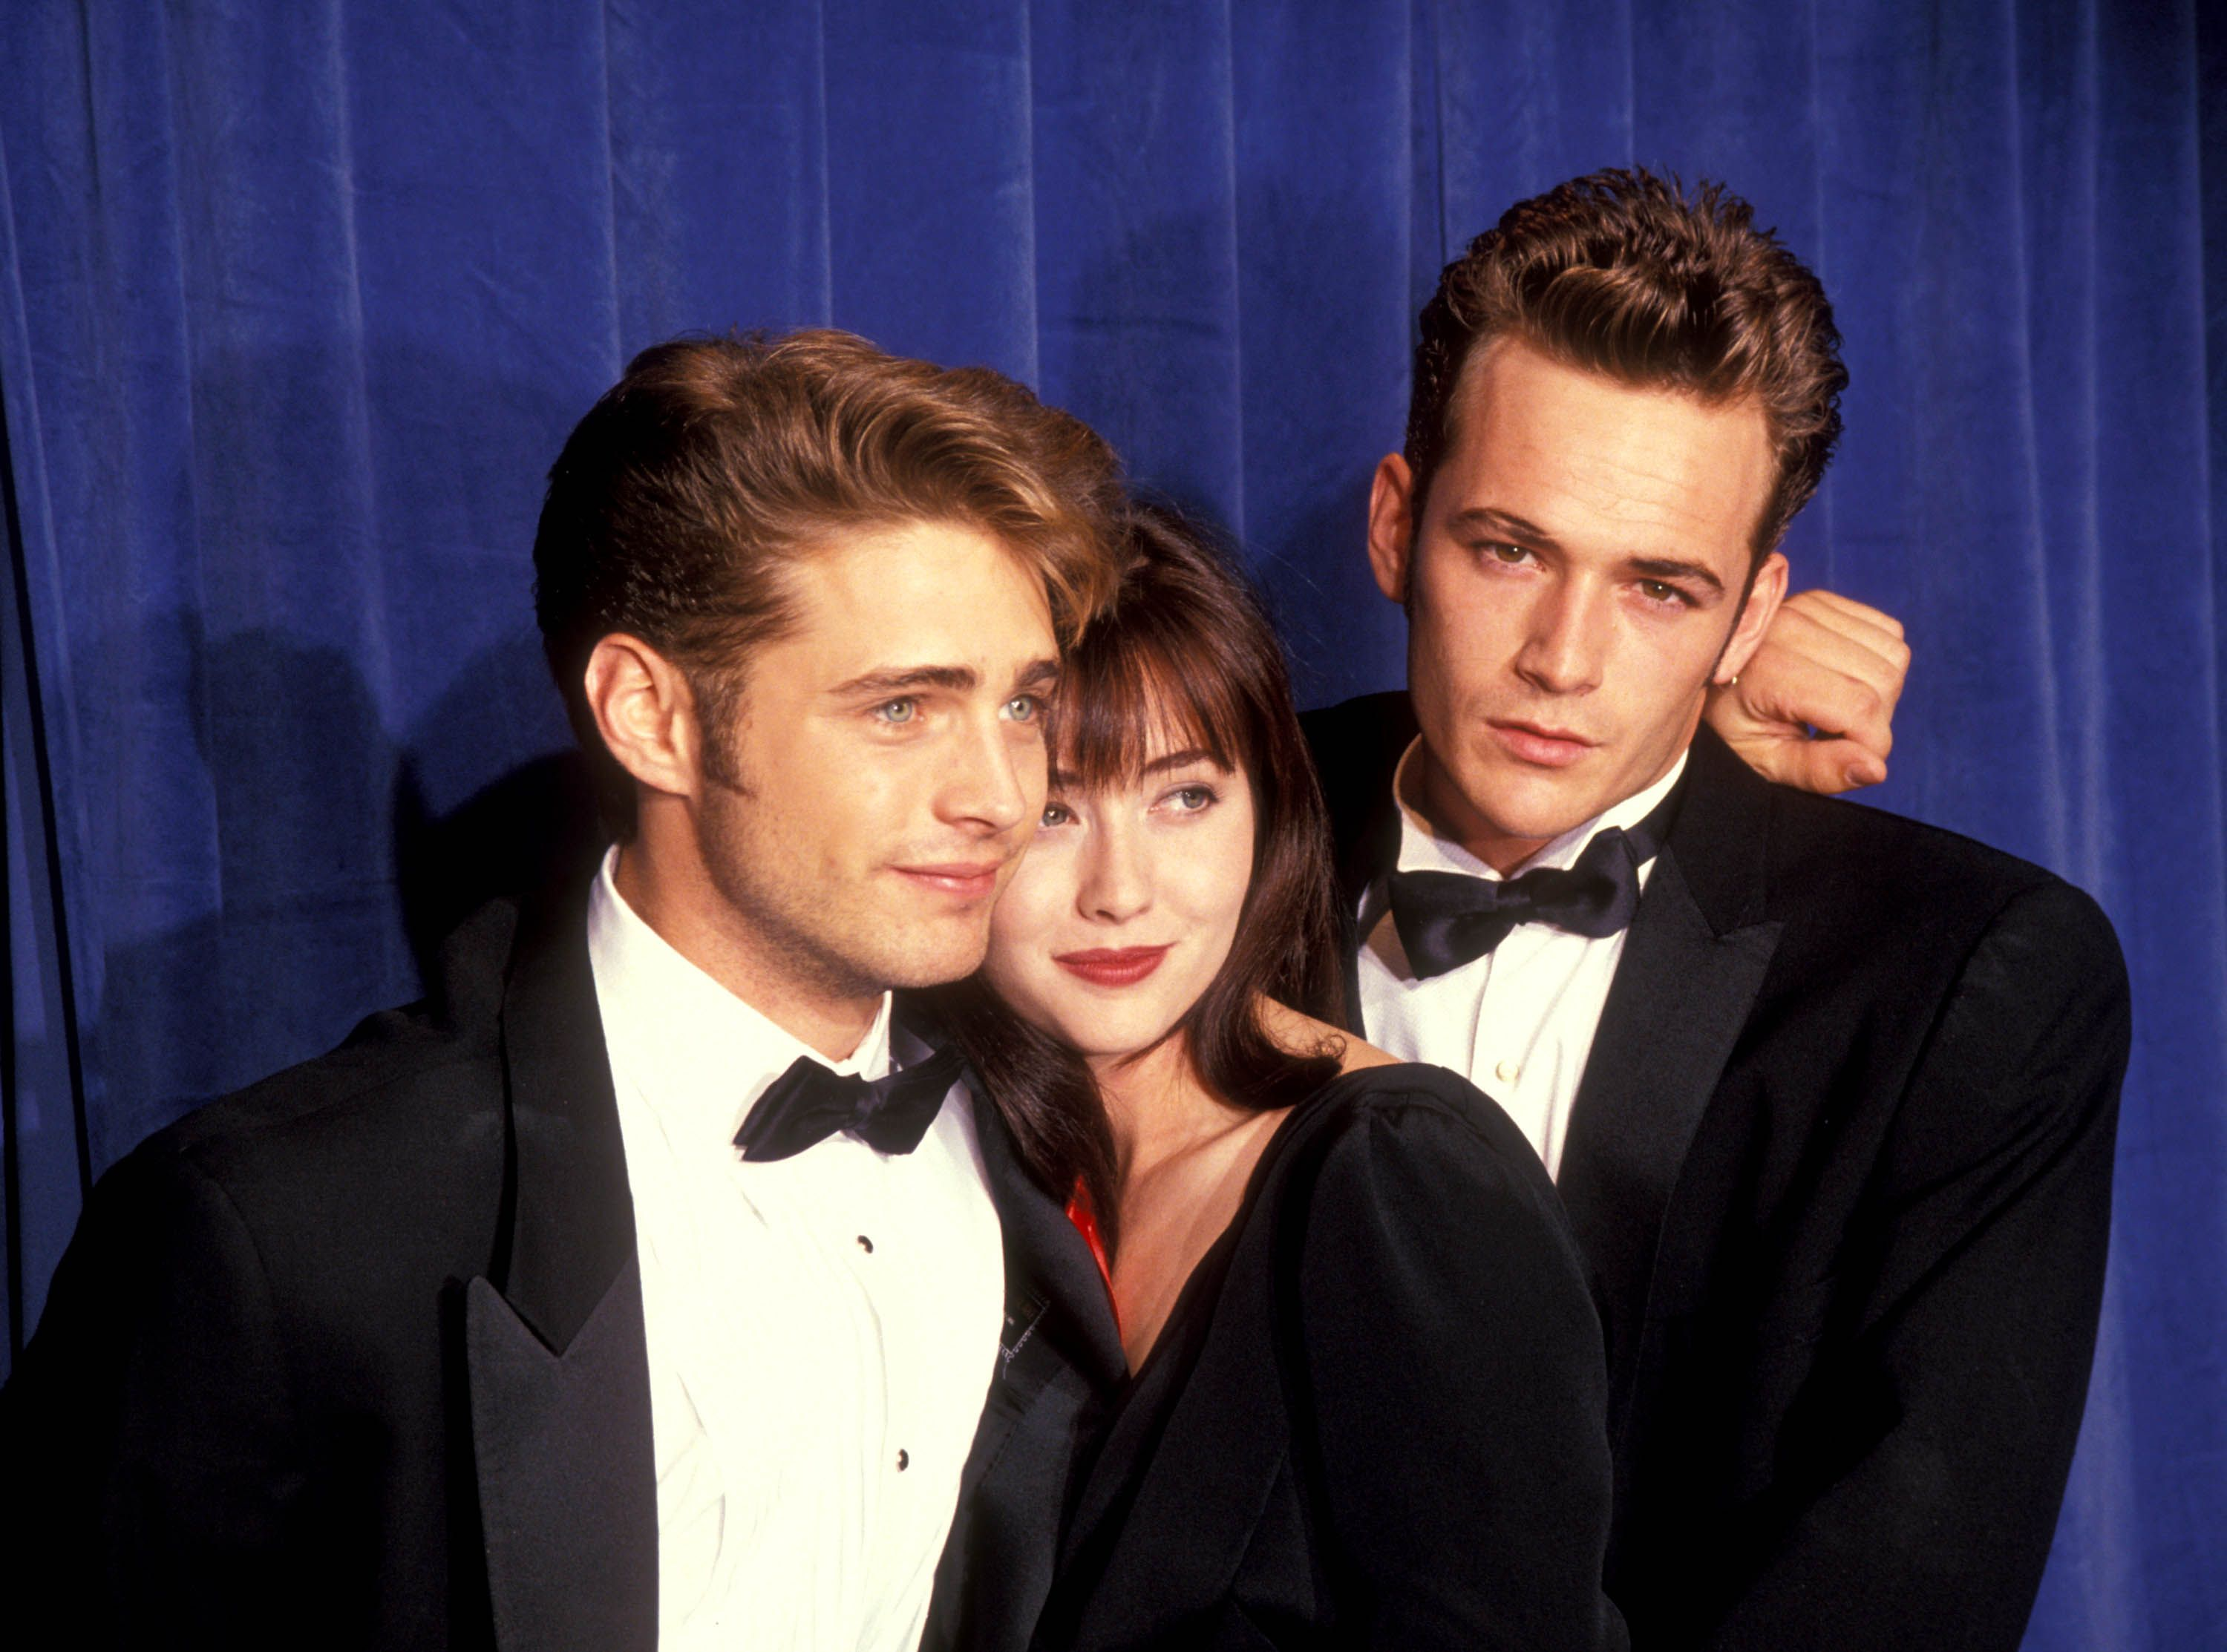 Jason Priestley, Shannen Doherty, and Perry at the 43rd Annual Primetime Emmy Awards at the Pasadena Civic Auditorium in 1991.